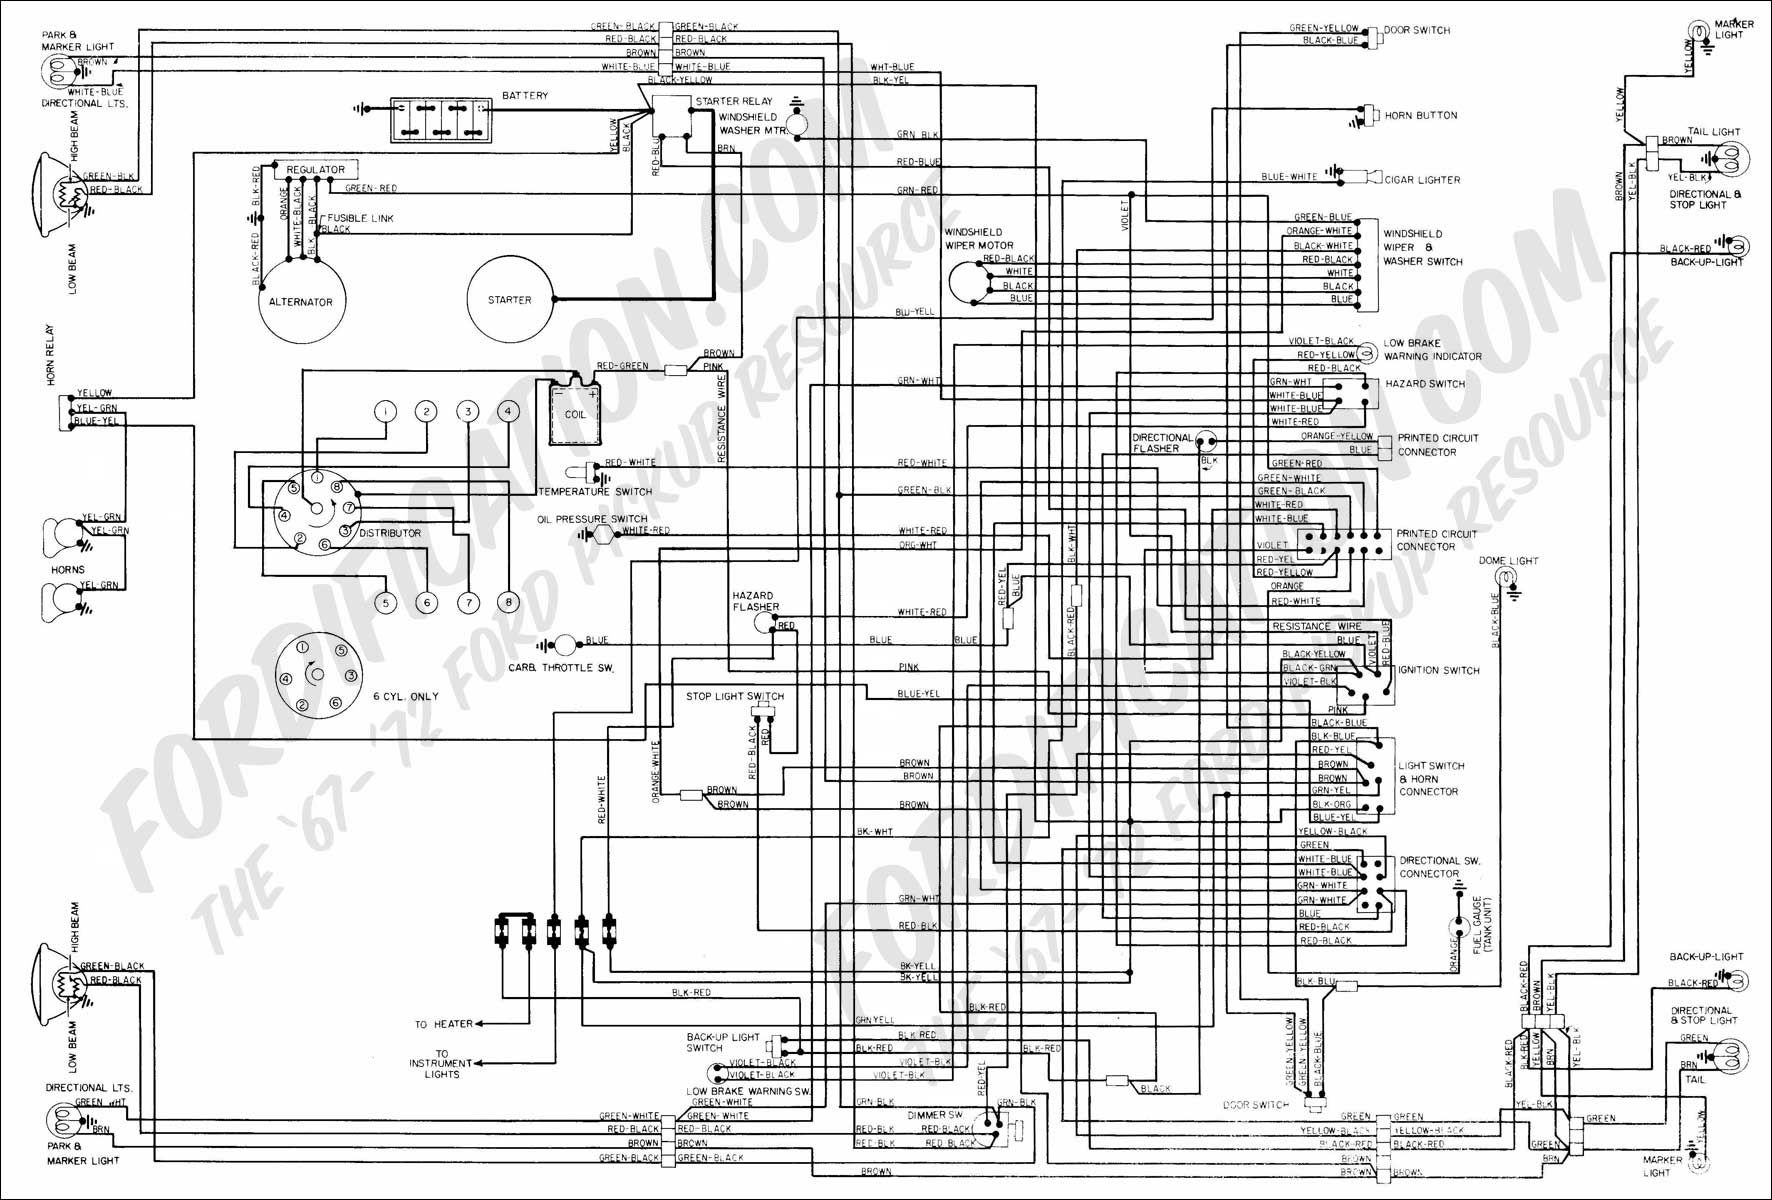 be873db495753211c2fc9a563f039b29 solenoid 1971 f250 1971 ford f100 wiring diagram www ford 1971 ford f250 wiring diagram at mifinder.co